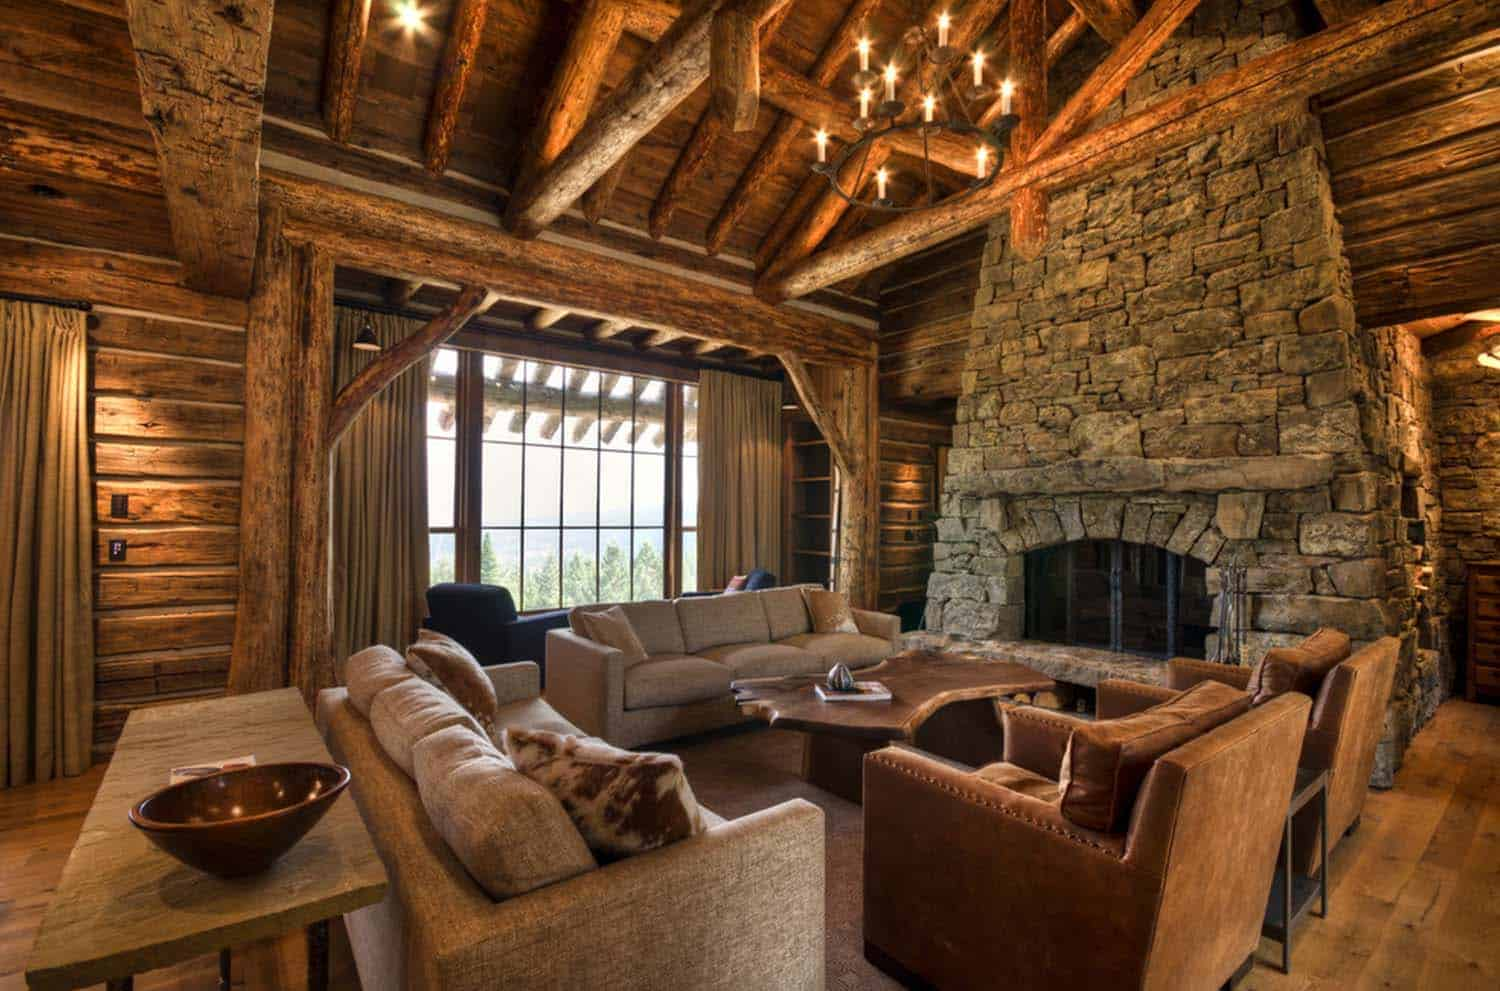 Rustic Mountain Home-Laura Fedro Interiors-08-1 Kindesign